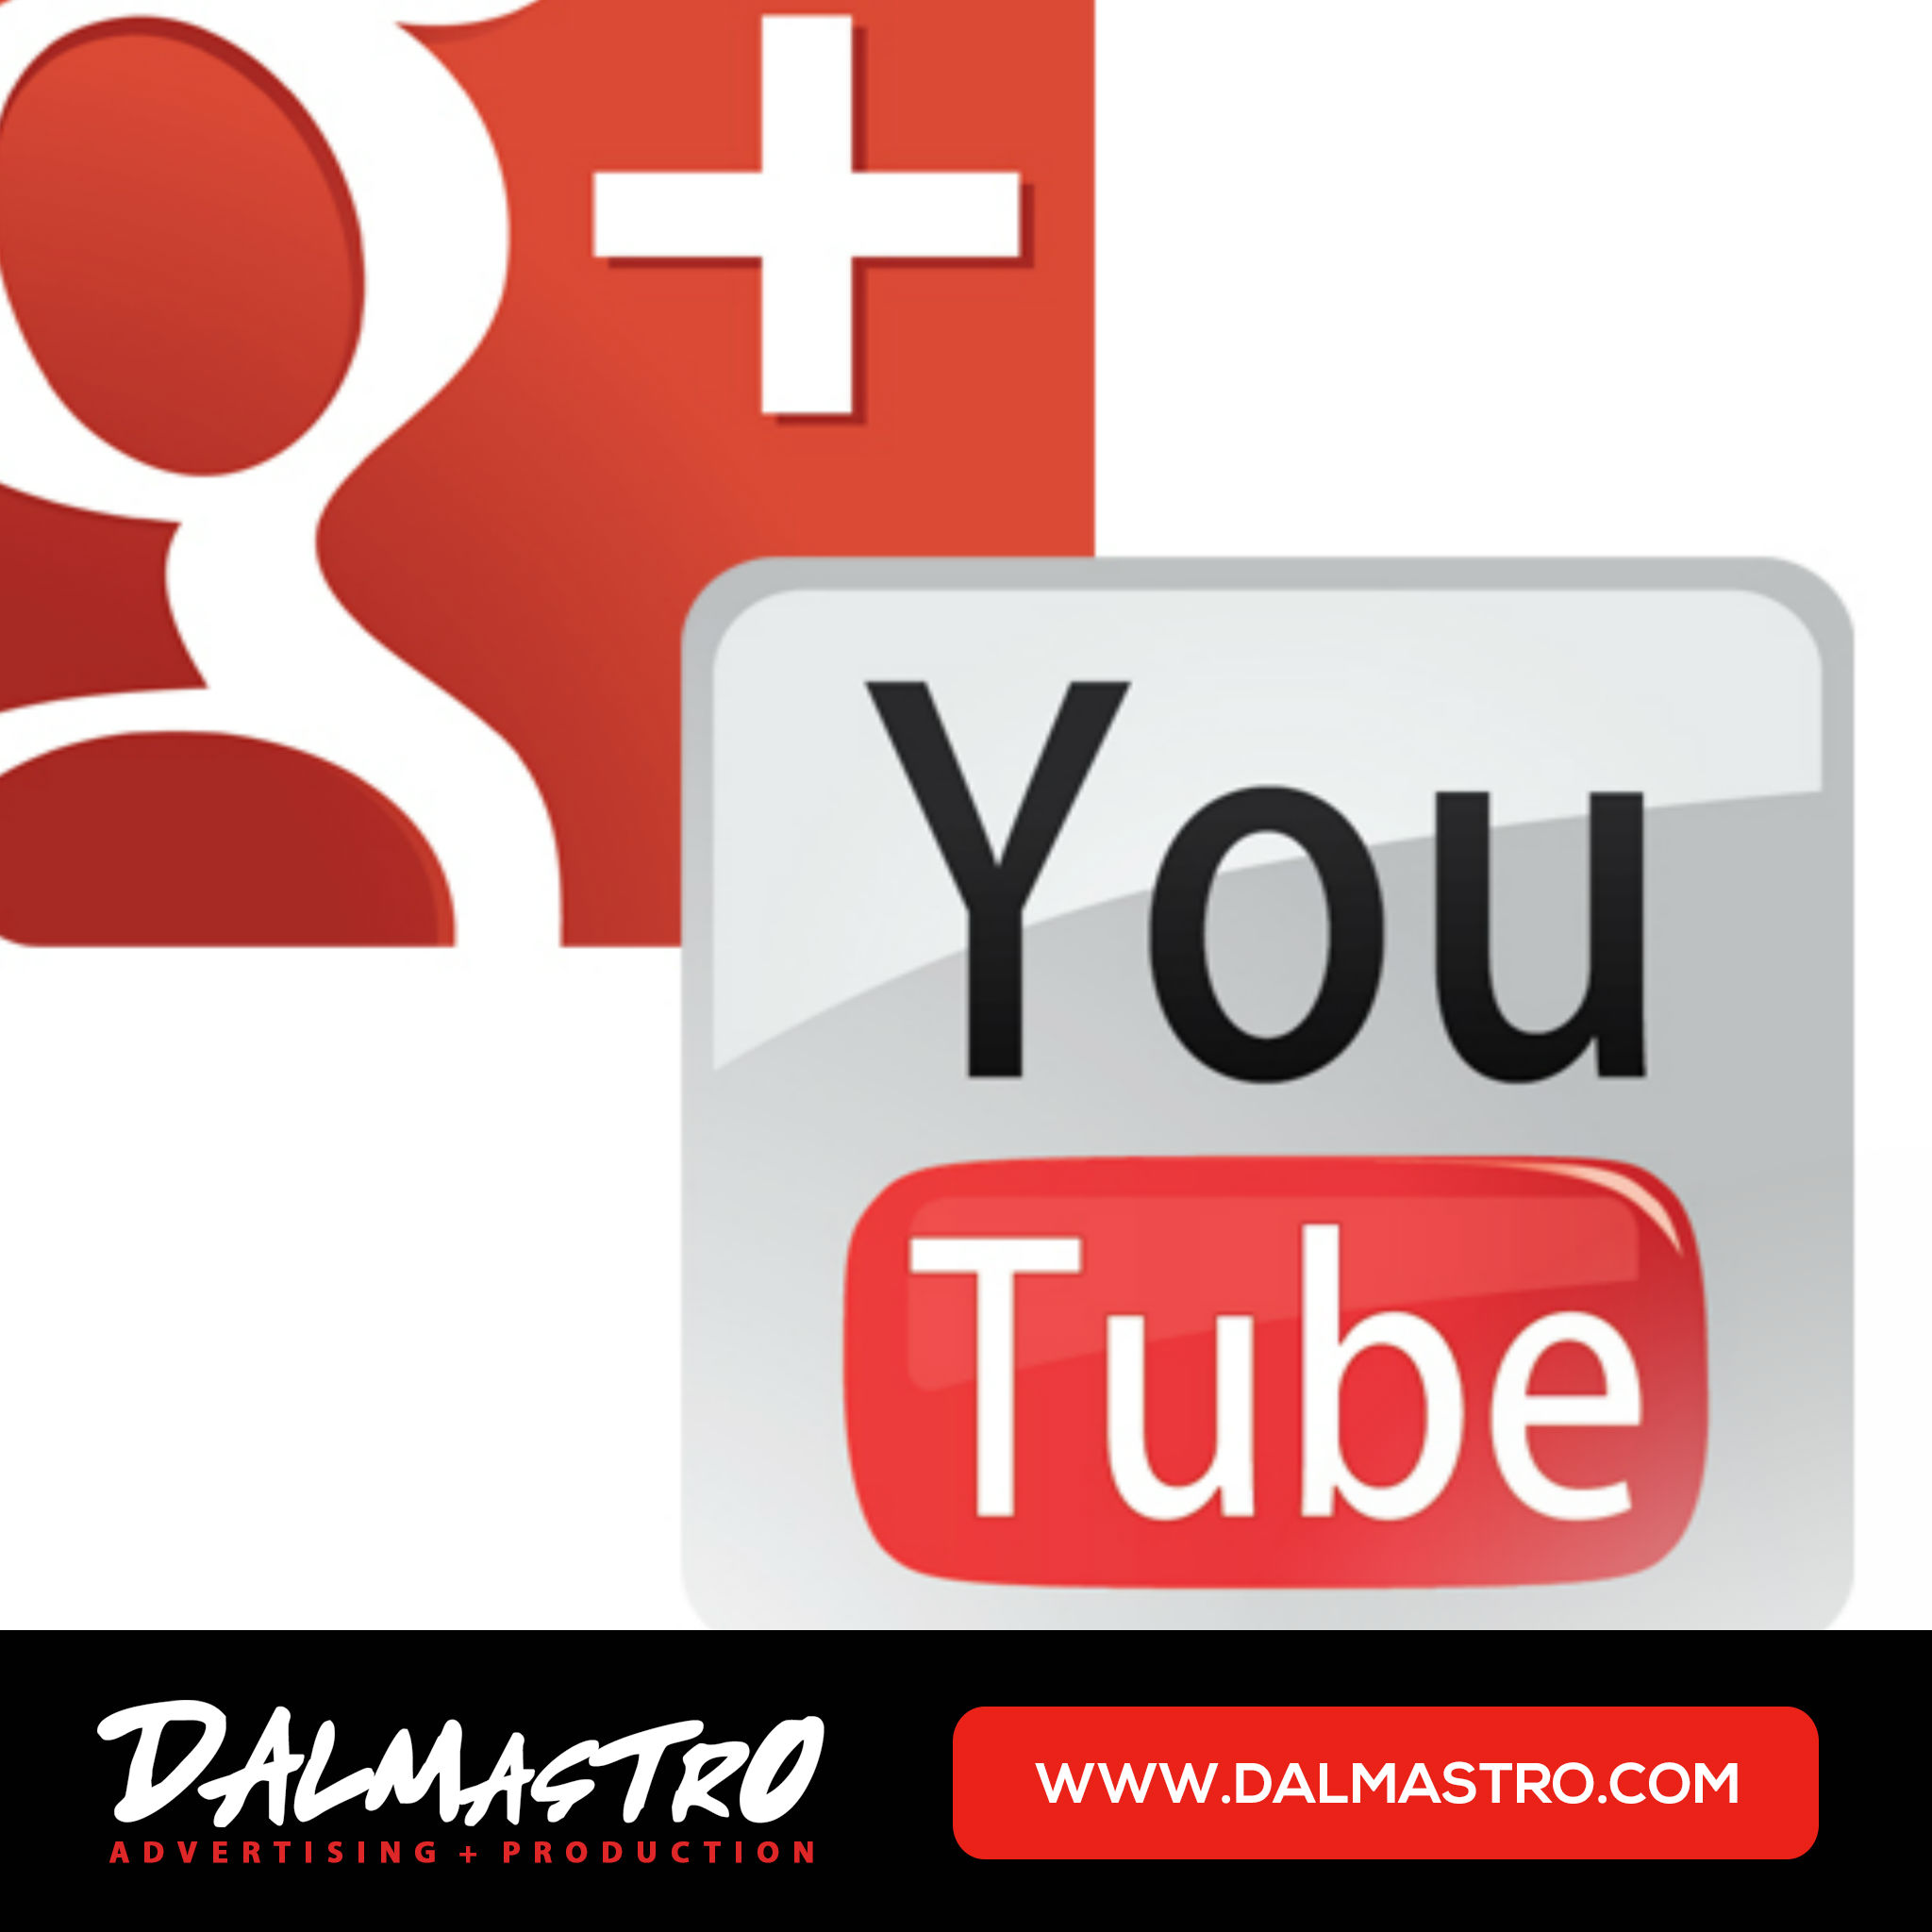 Google Plus & You Tube